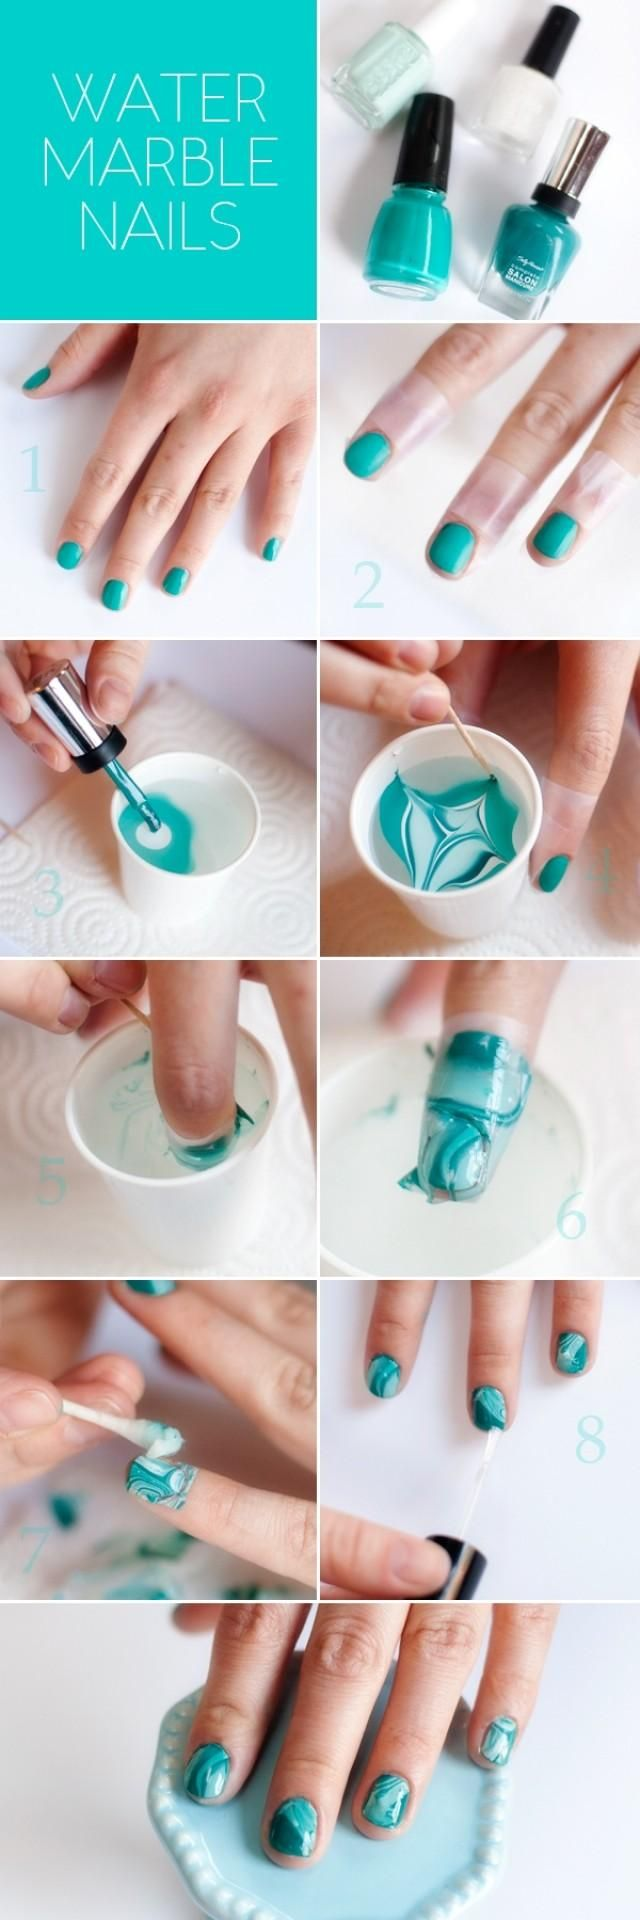 Weddbook is a content discovery engine mostly specialized on wedding concept. You can collect images, videos or articles you discovered  organize them, add your own ideas to your collections and share with other people | water marble nail tutorial